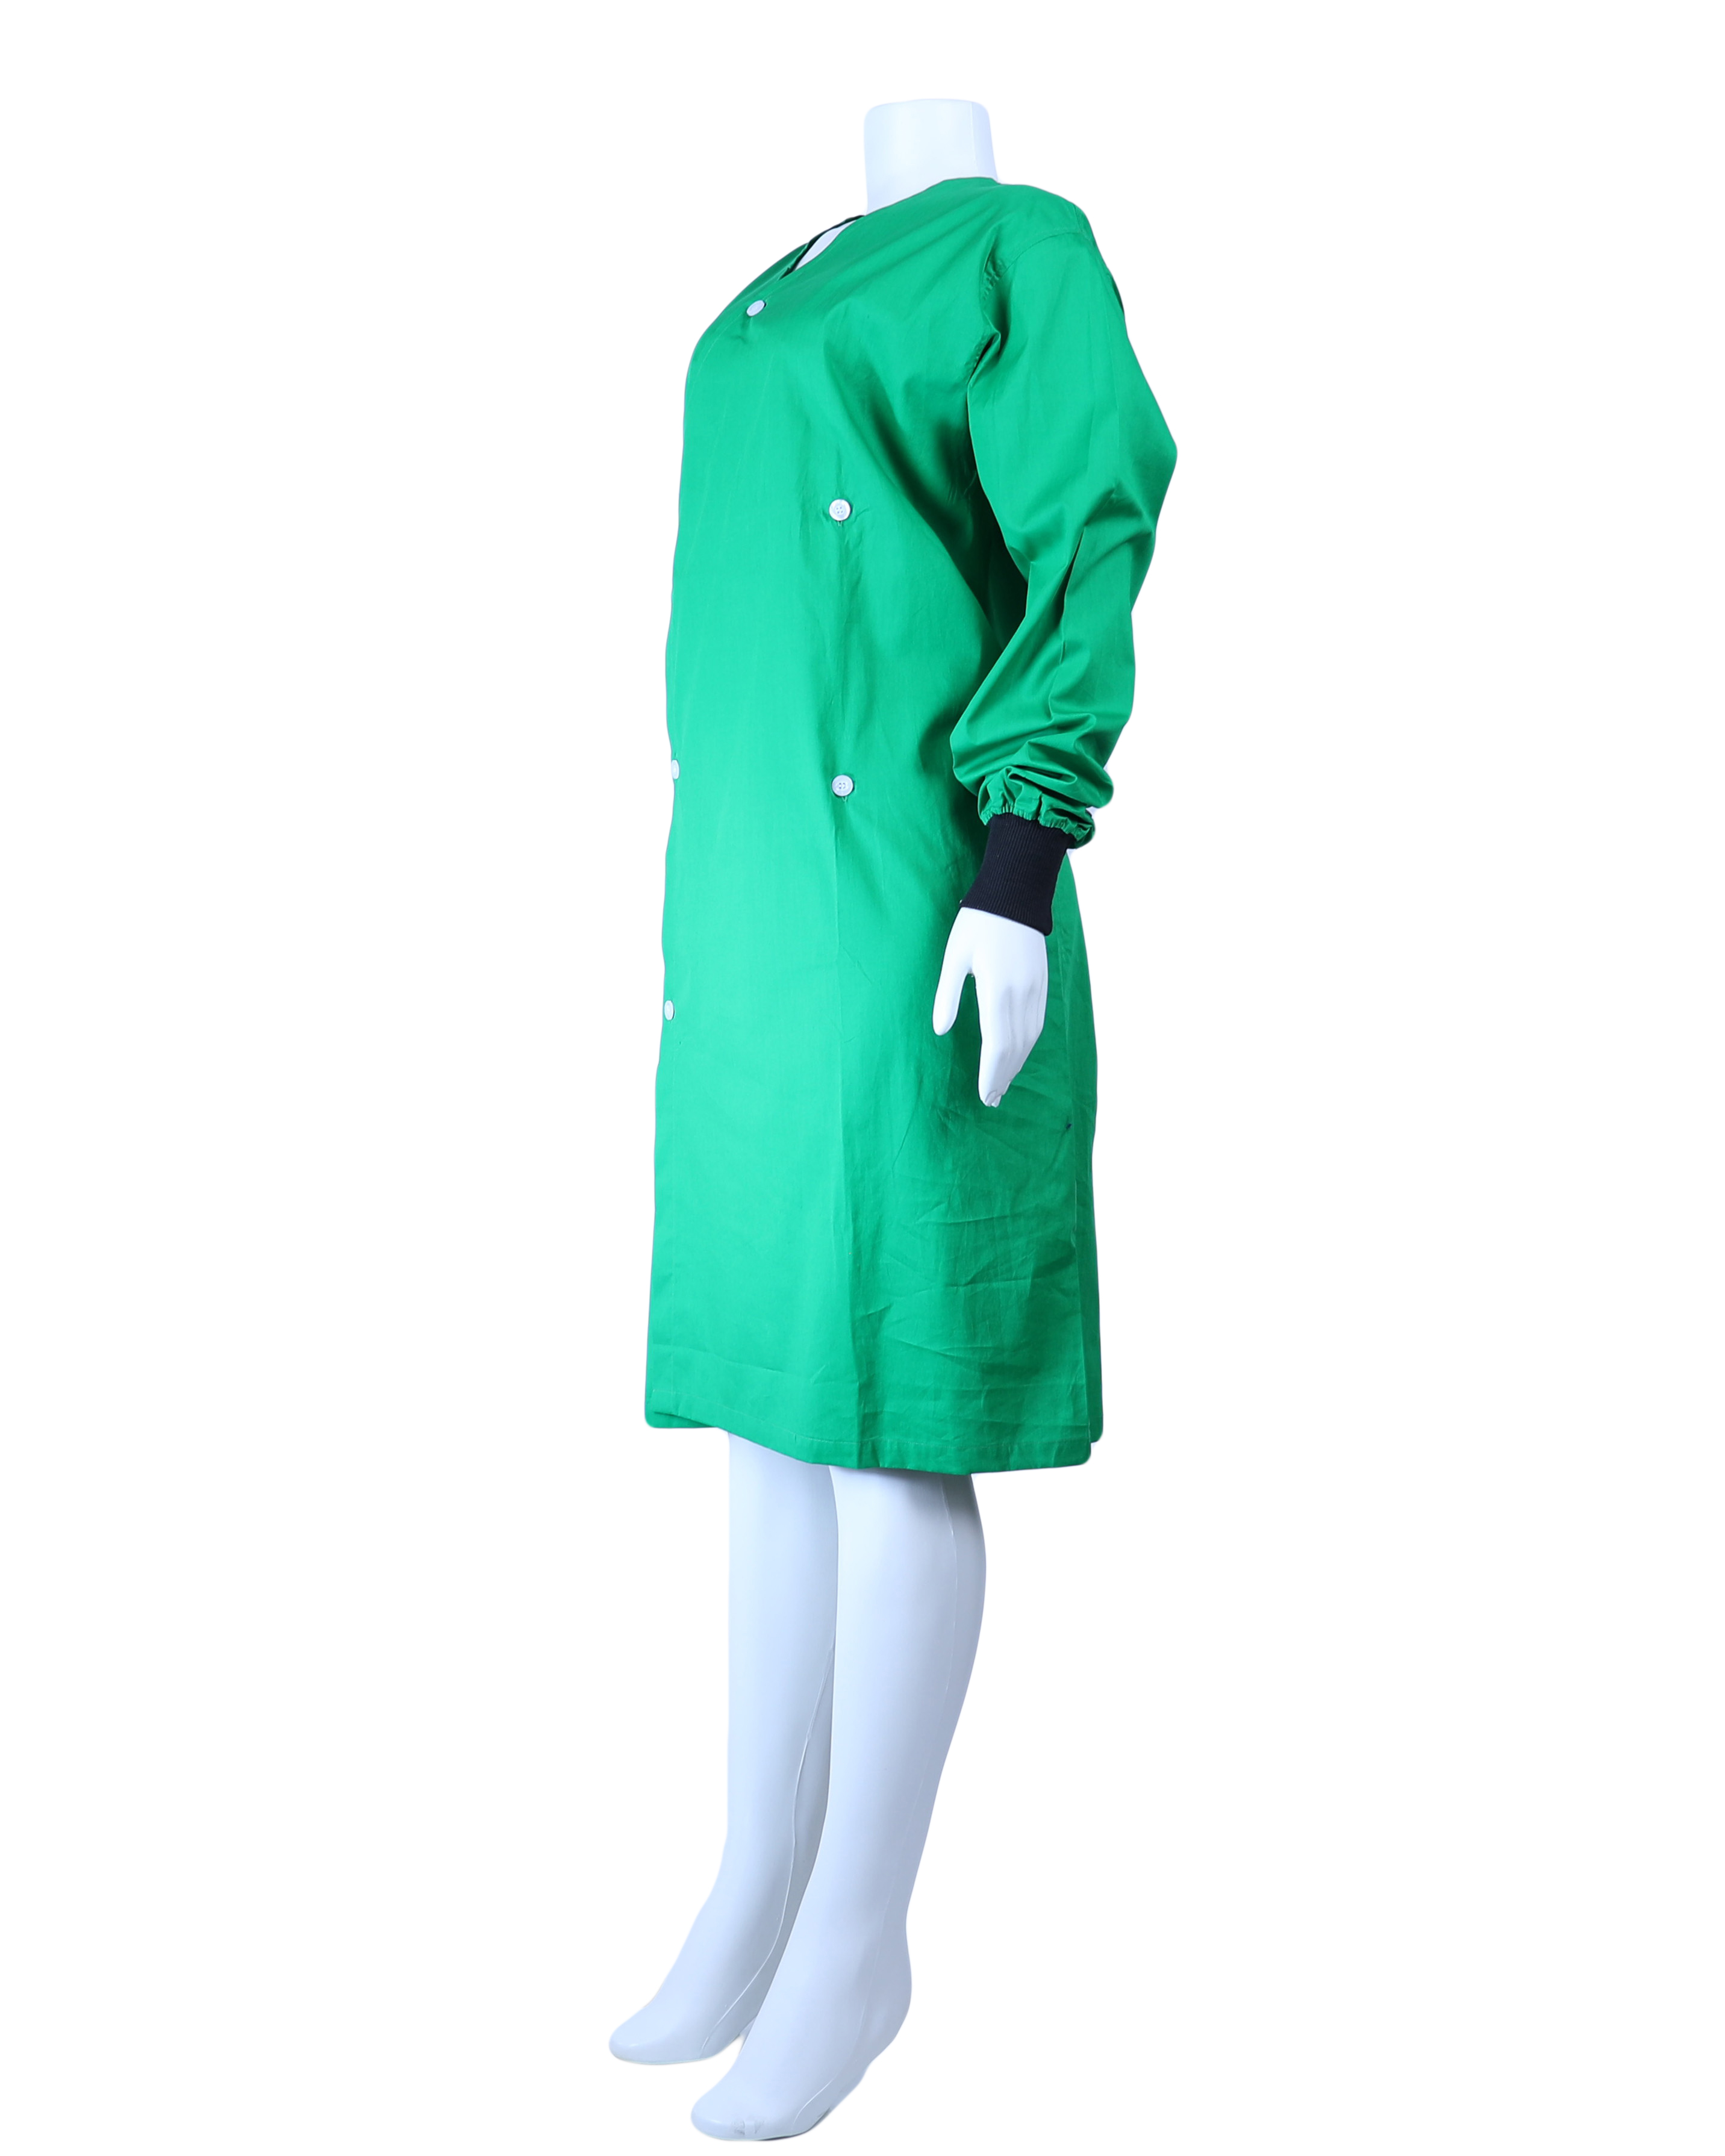 Surgical Gown, F06